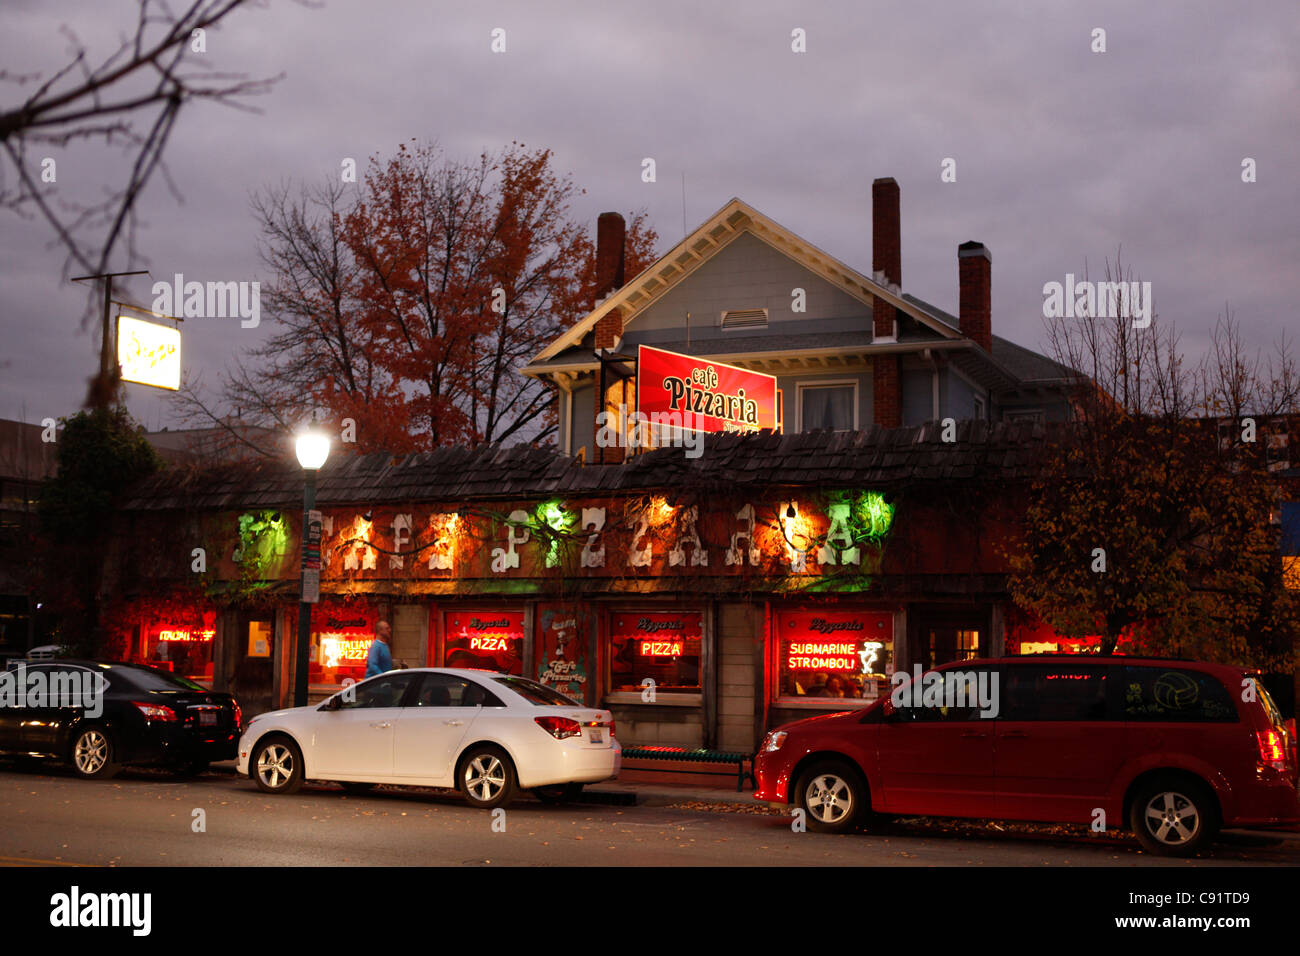 Cafe Pizzaria Restaurant Bloomington Indiana Downtown Night